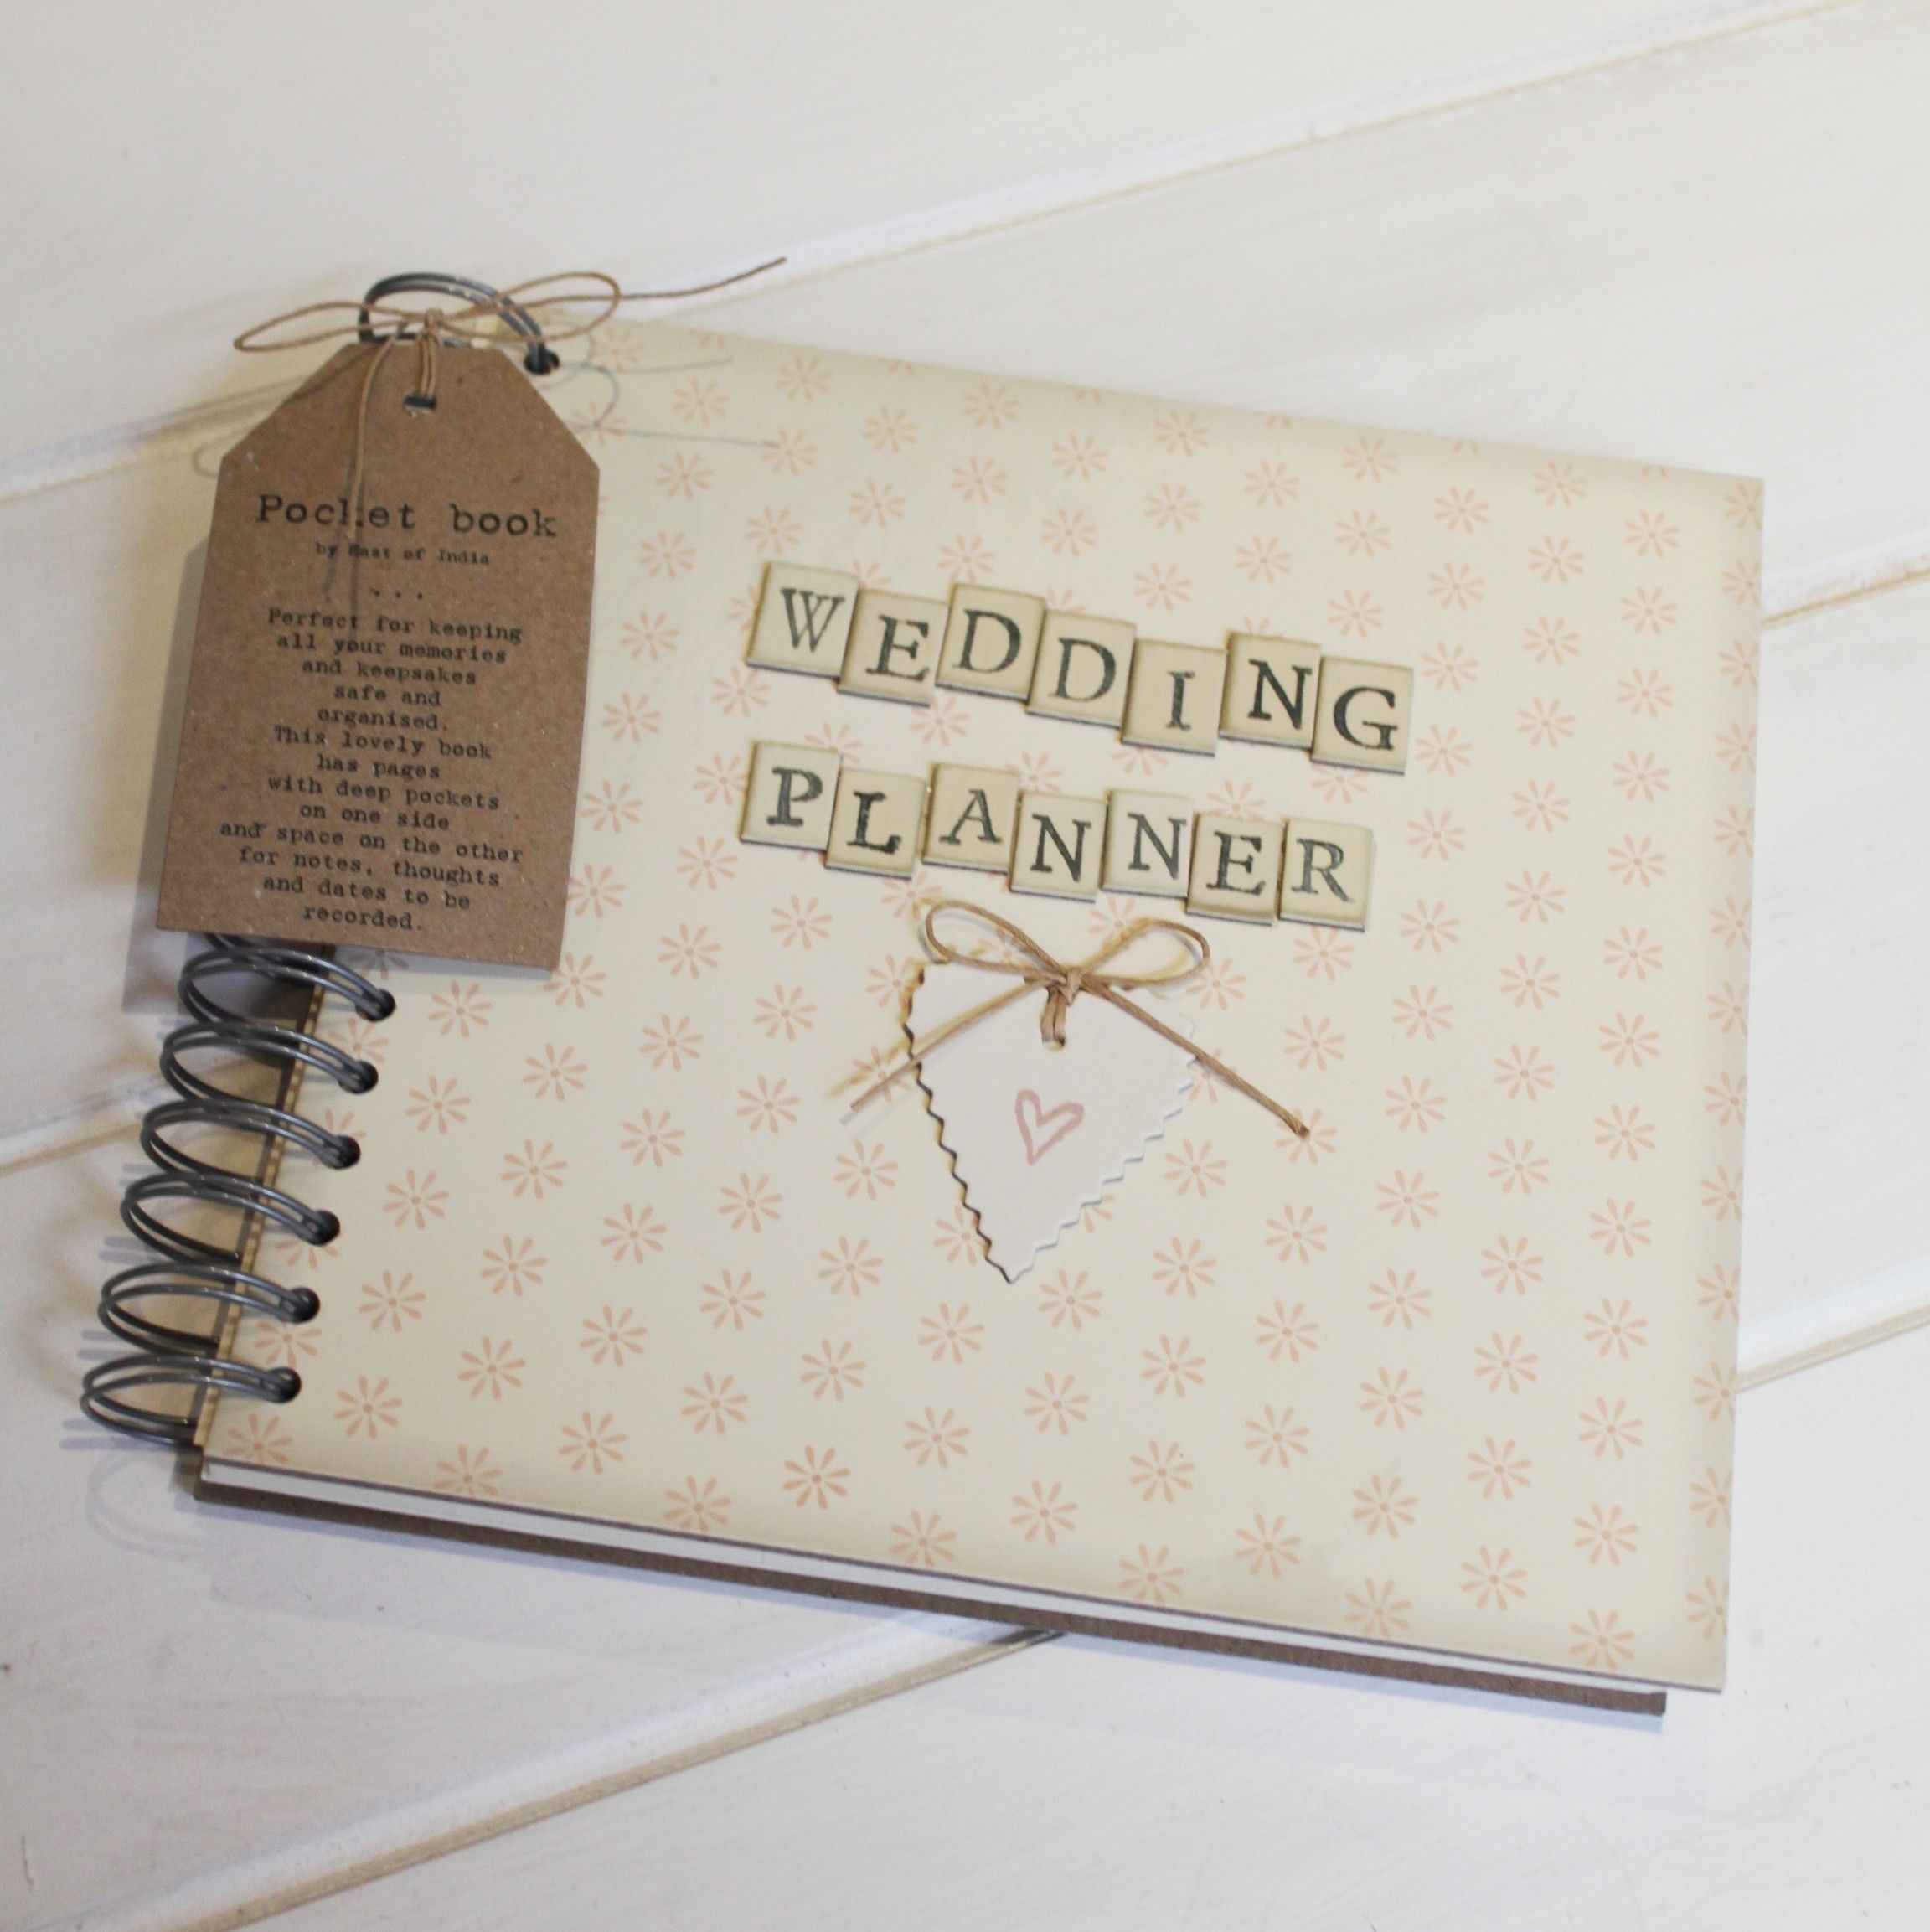 Wedding Planner Book A beautiful wedding planning organiser book